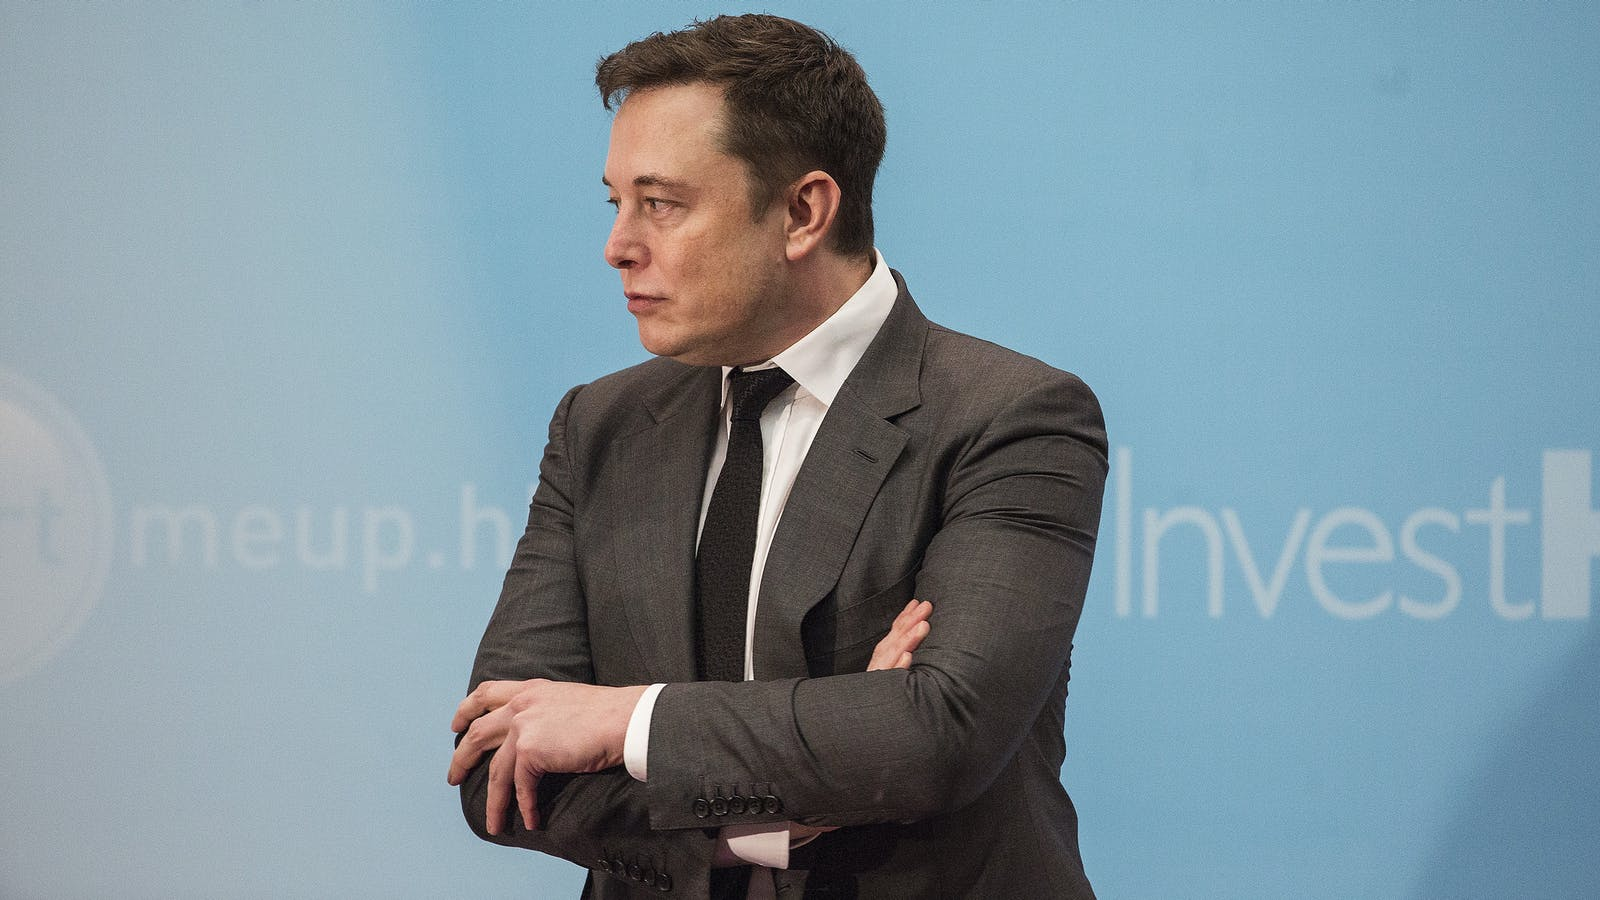 Elon Musk, CEO of Tesla and Chairman of SolarCity. Photo by Bloomberg.